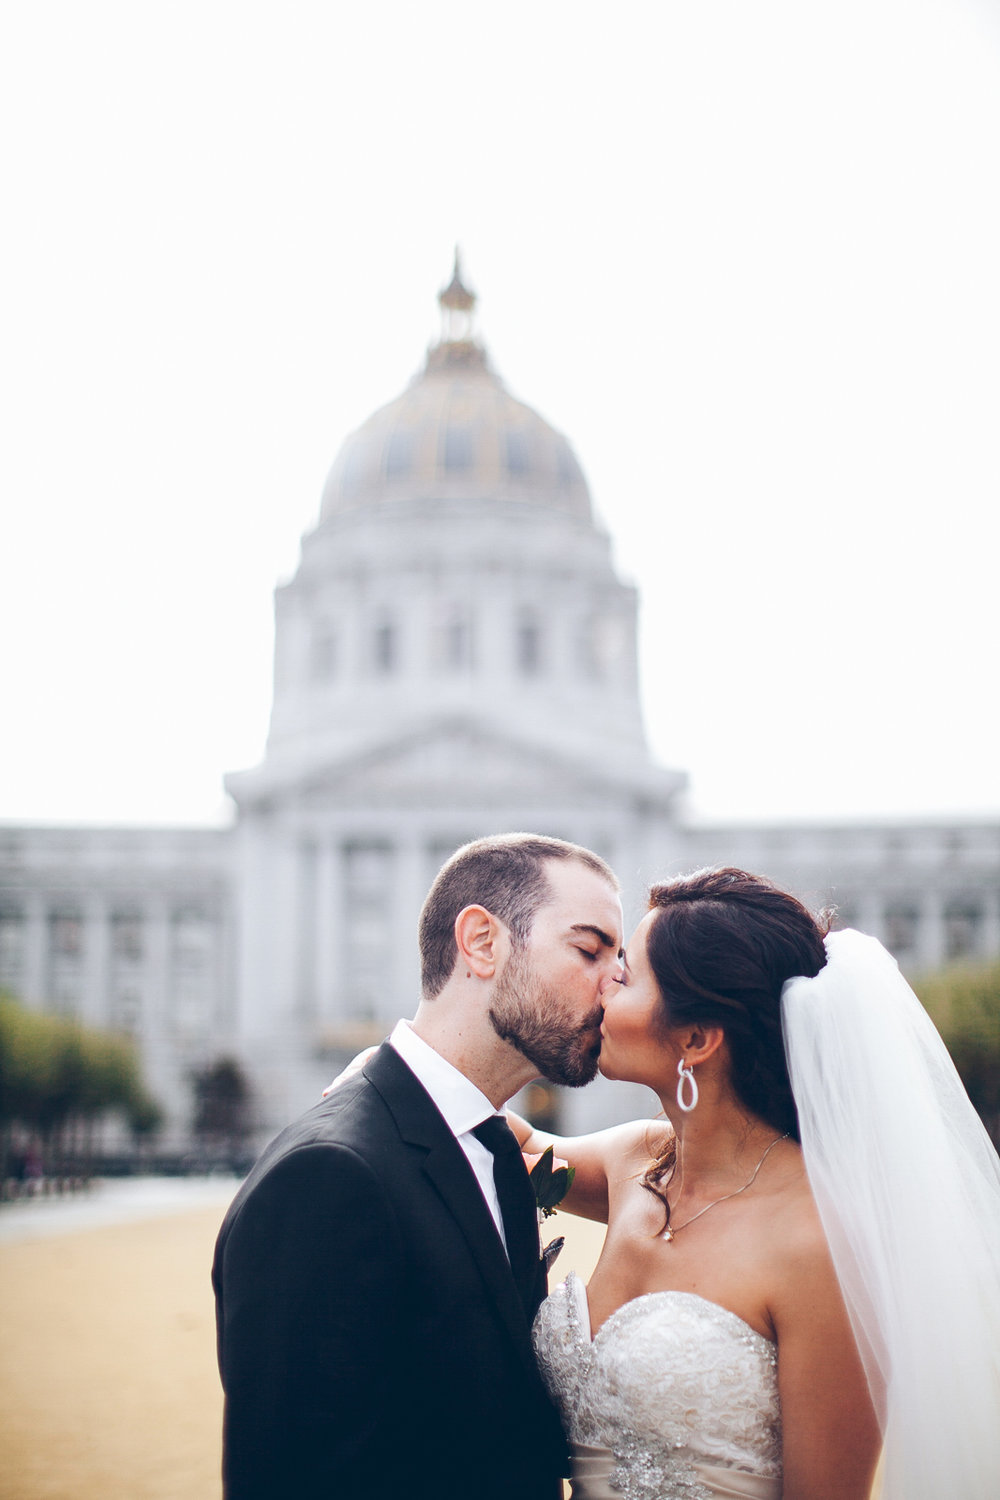 San_francisco_city_hall_wedding_photography_meegan_travis_ebony_siovhan_bokeh_photography_66.jpg